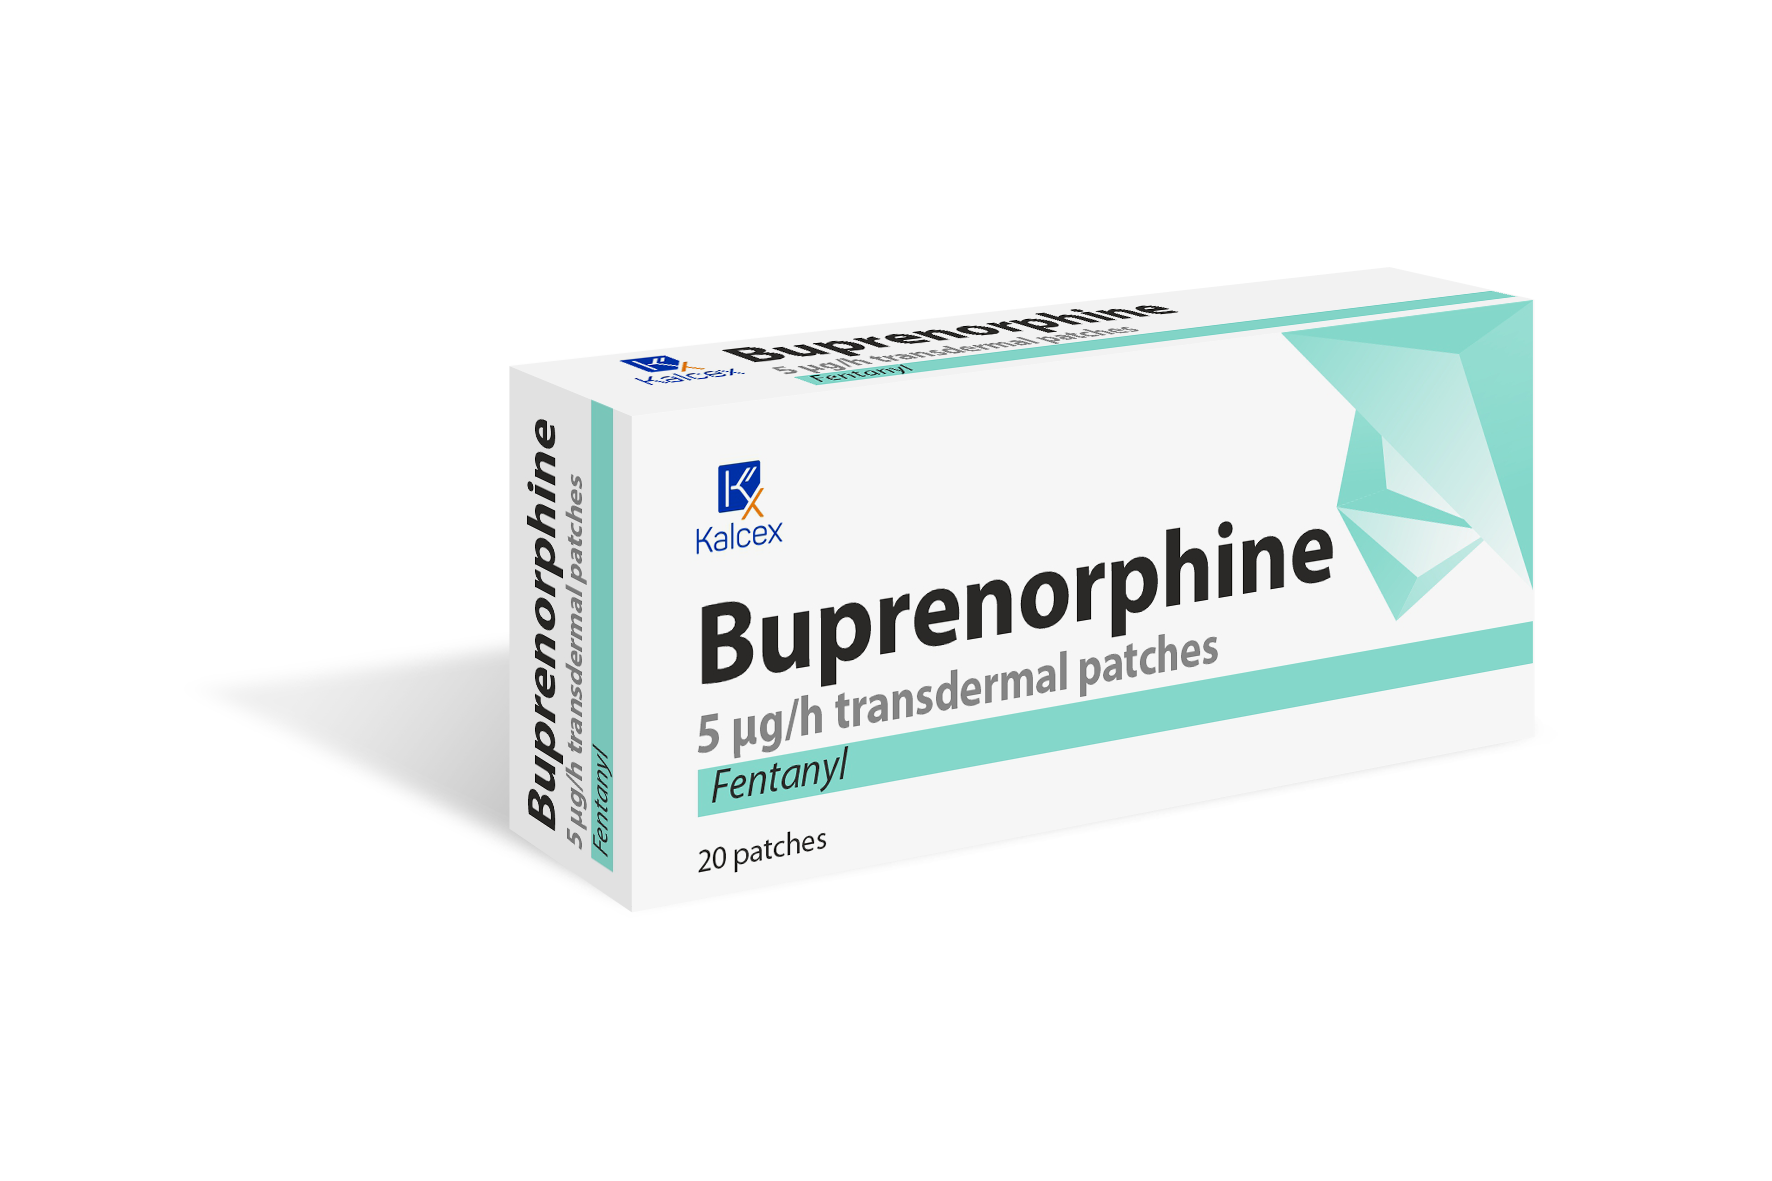 Buprenorphine transdermal patches*